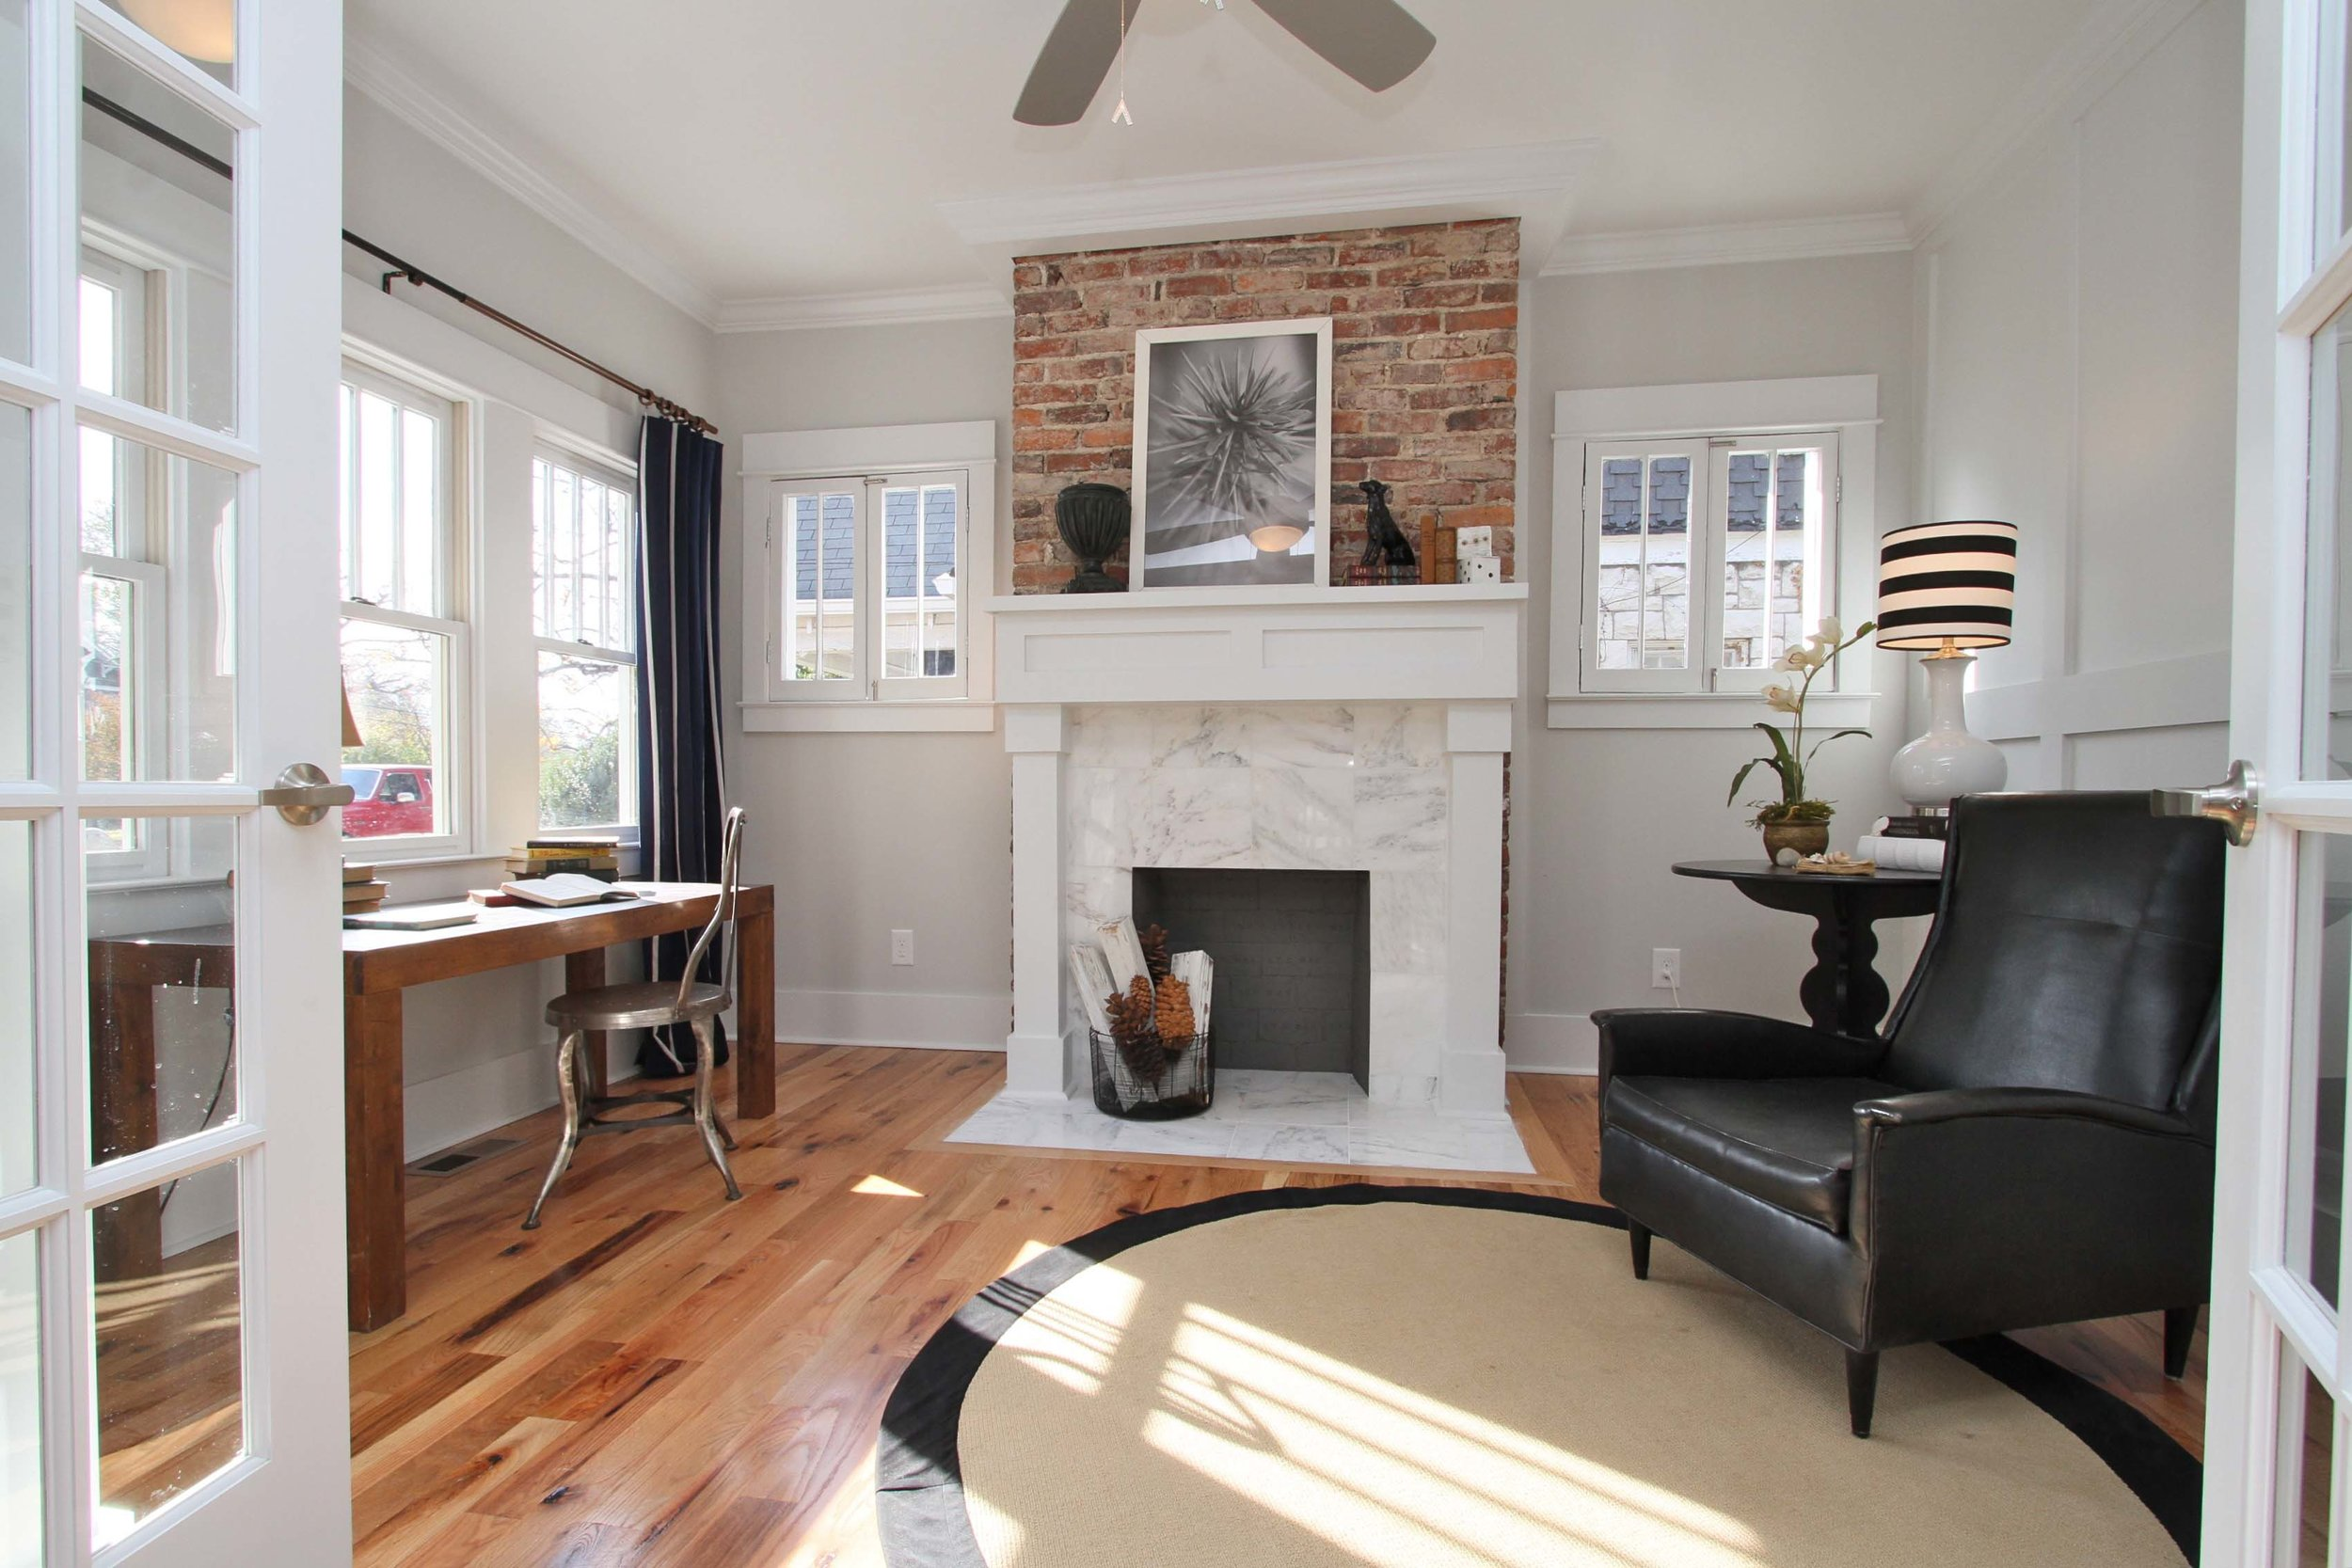 House-Plans-Online-Historic-Nashville-Peggy-Newman-Renovation-Fireplace-Family-Great-Murphy.jpg